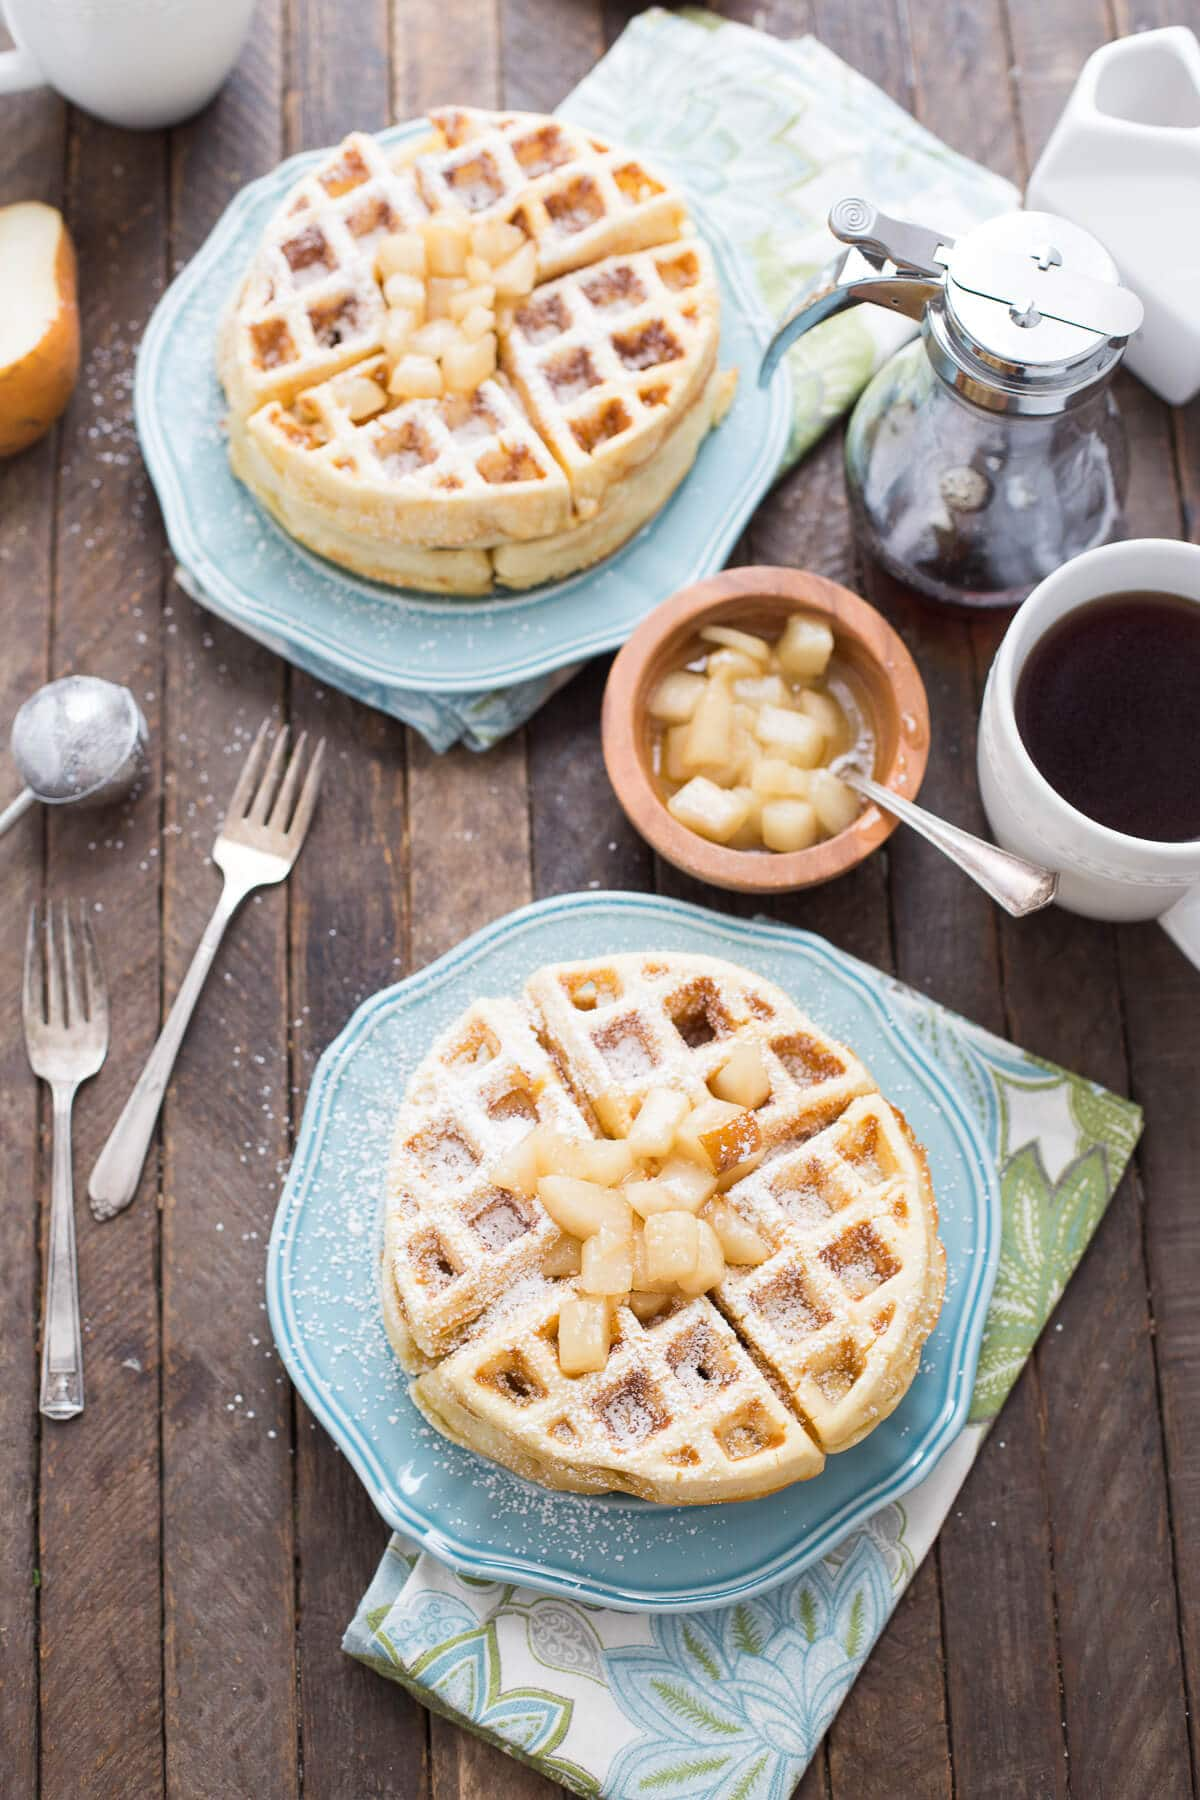 You have serve yourself some homemade waffles!  These are made with browned butter and topped with rum spiced pears!